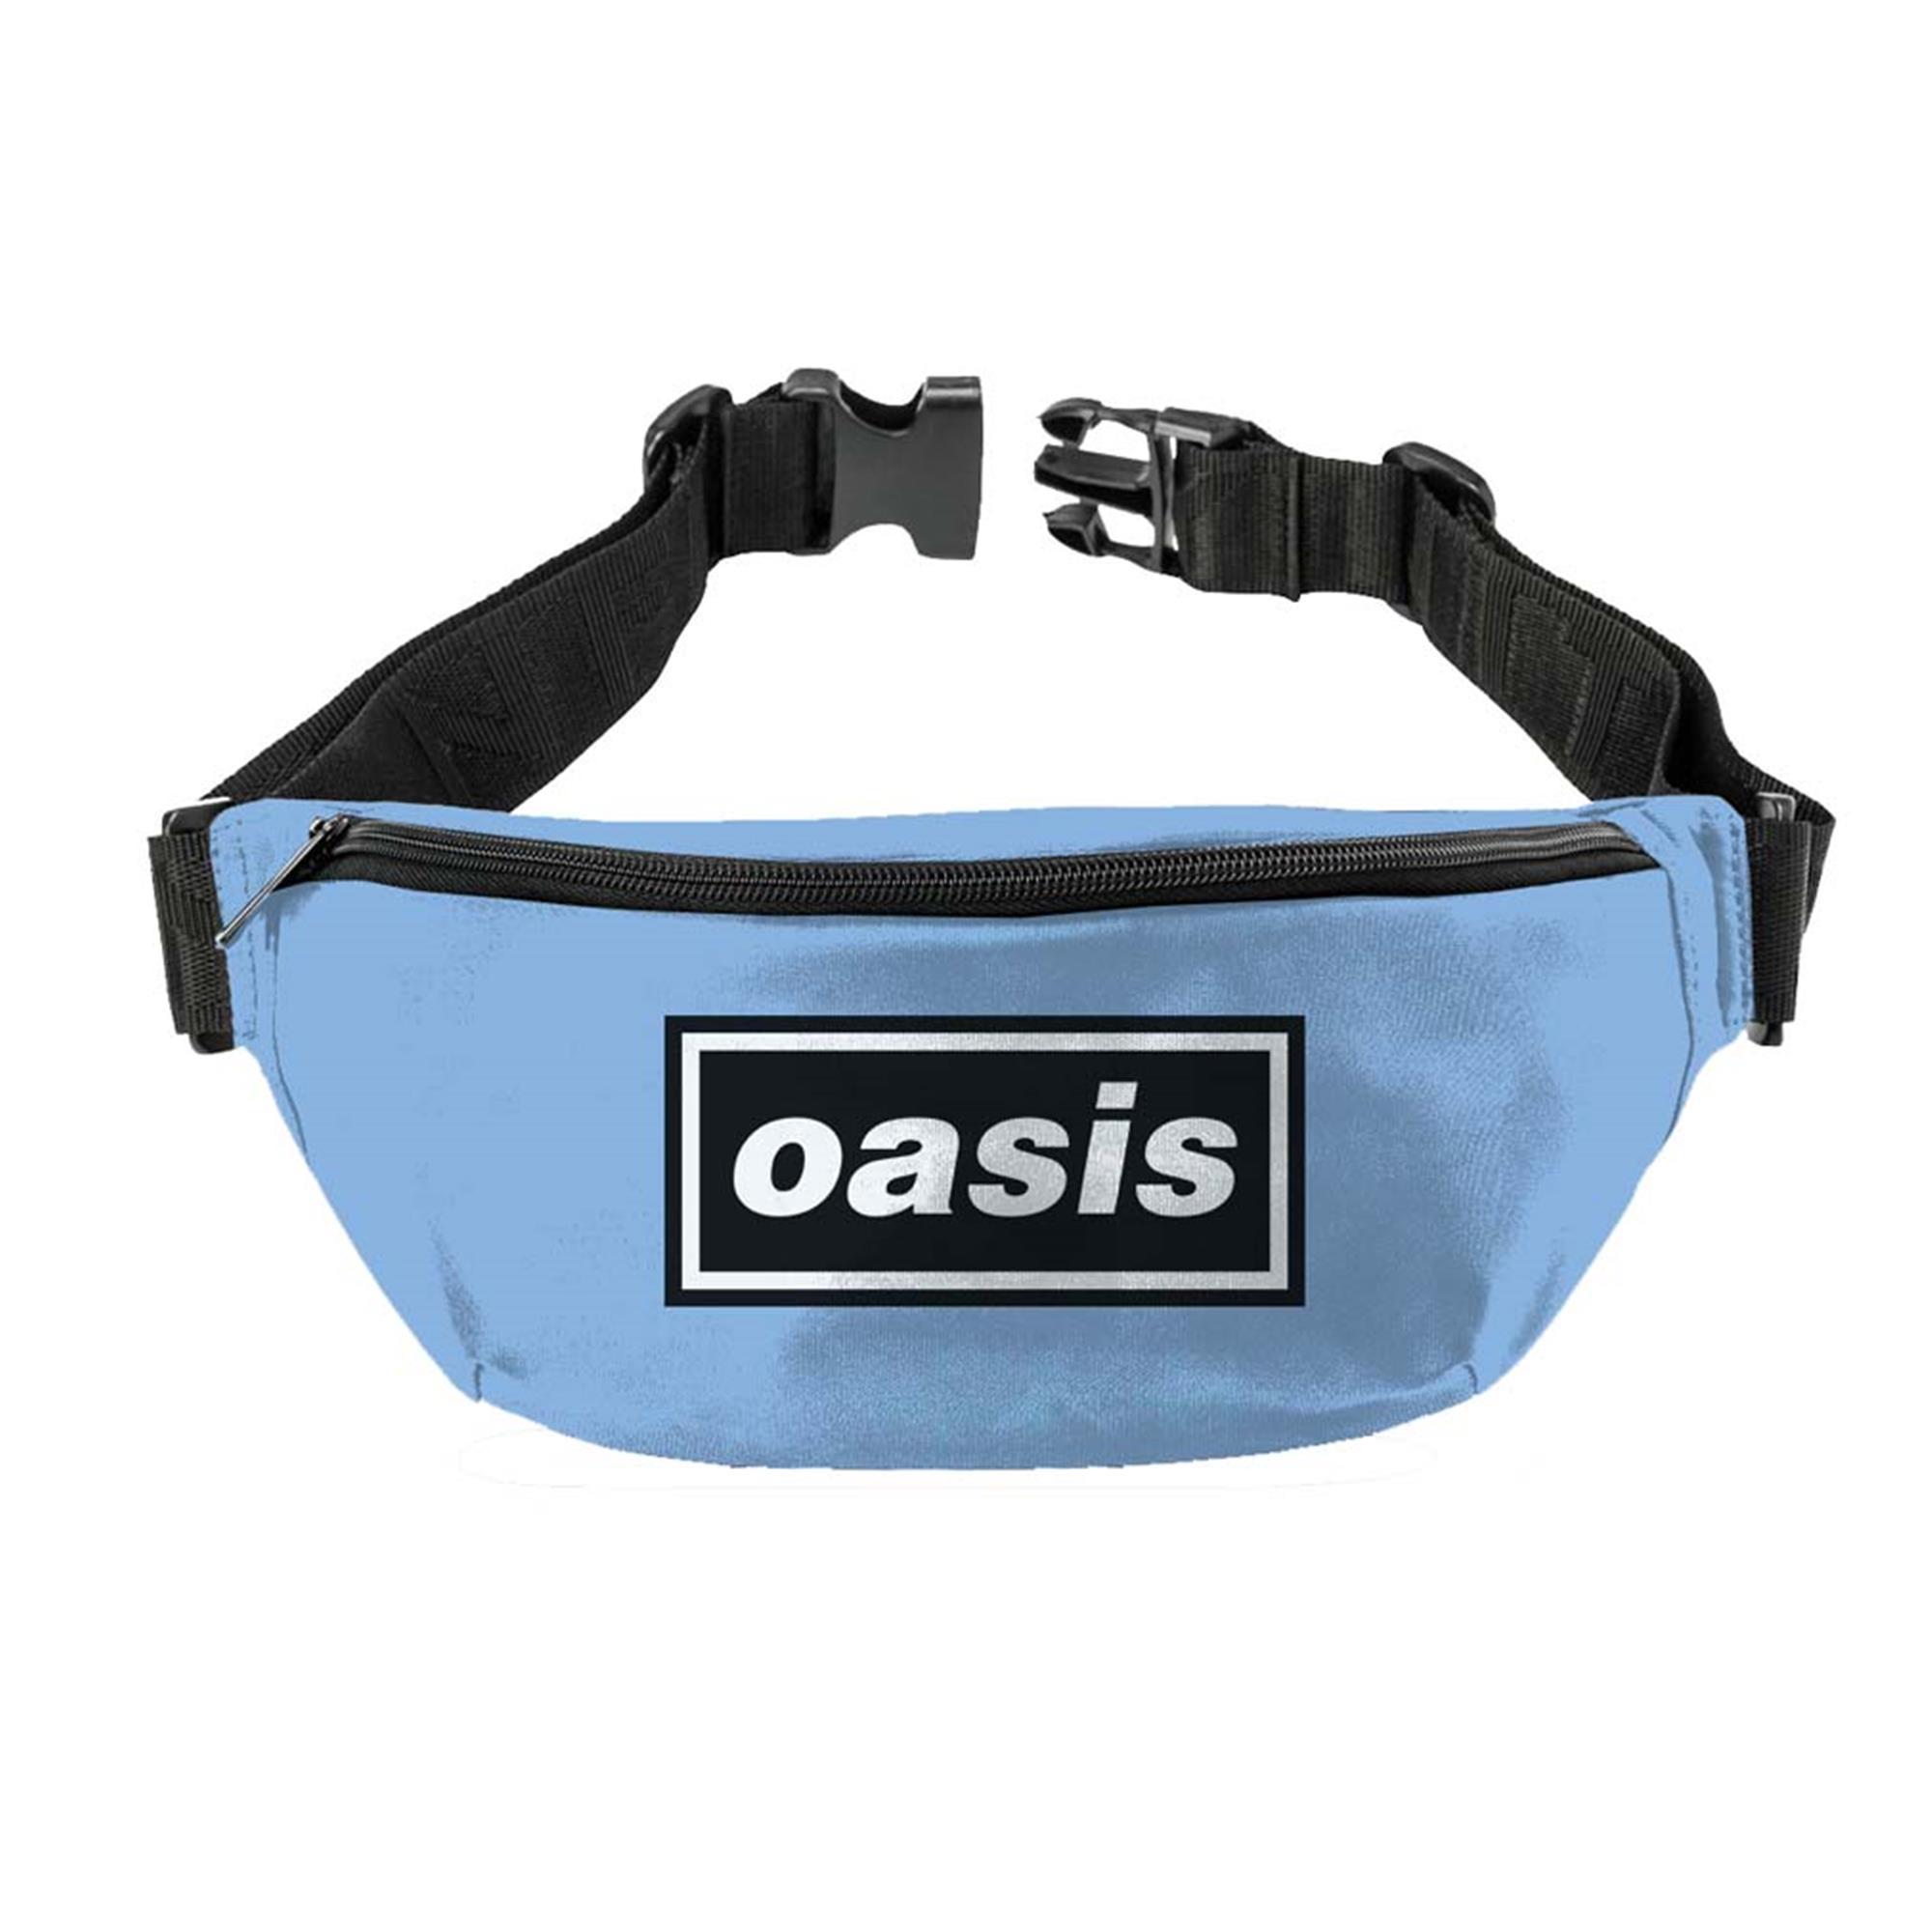 Oasis Blue Moon Fanny pack